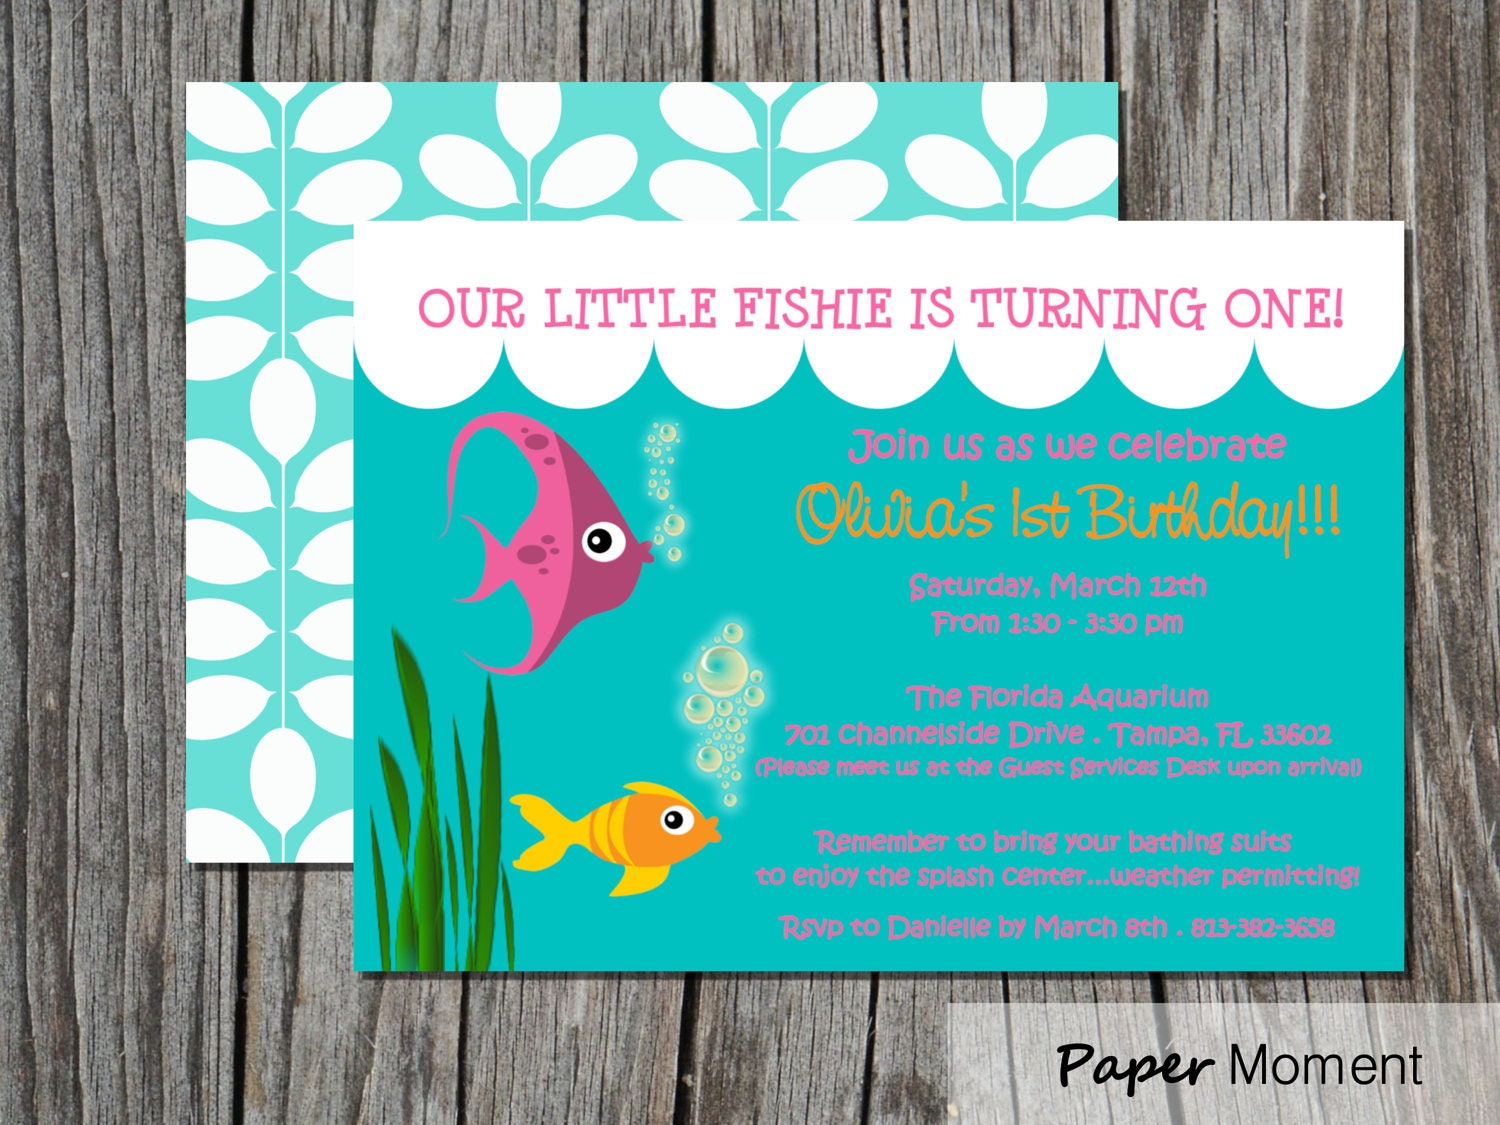 Under The Sea Party Invitations as nice invitation layout